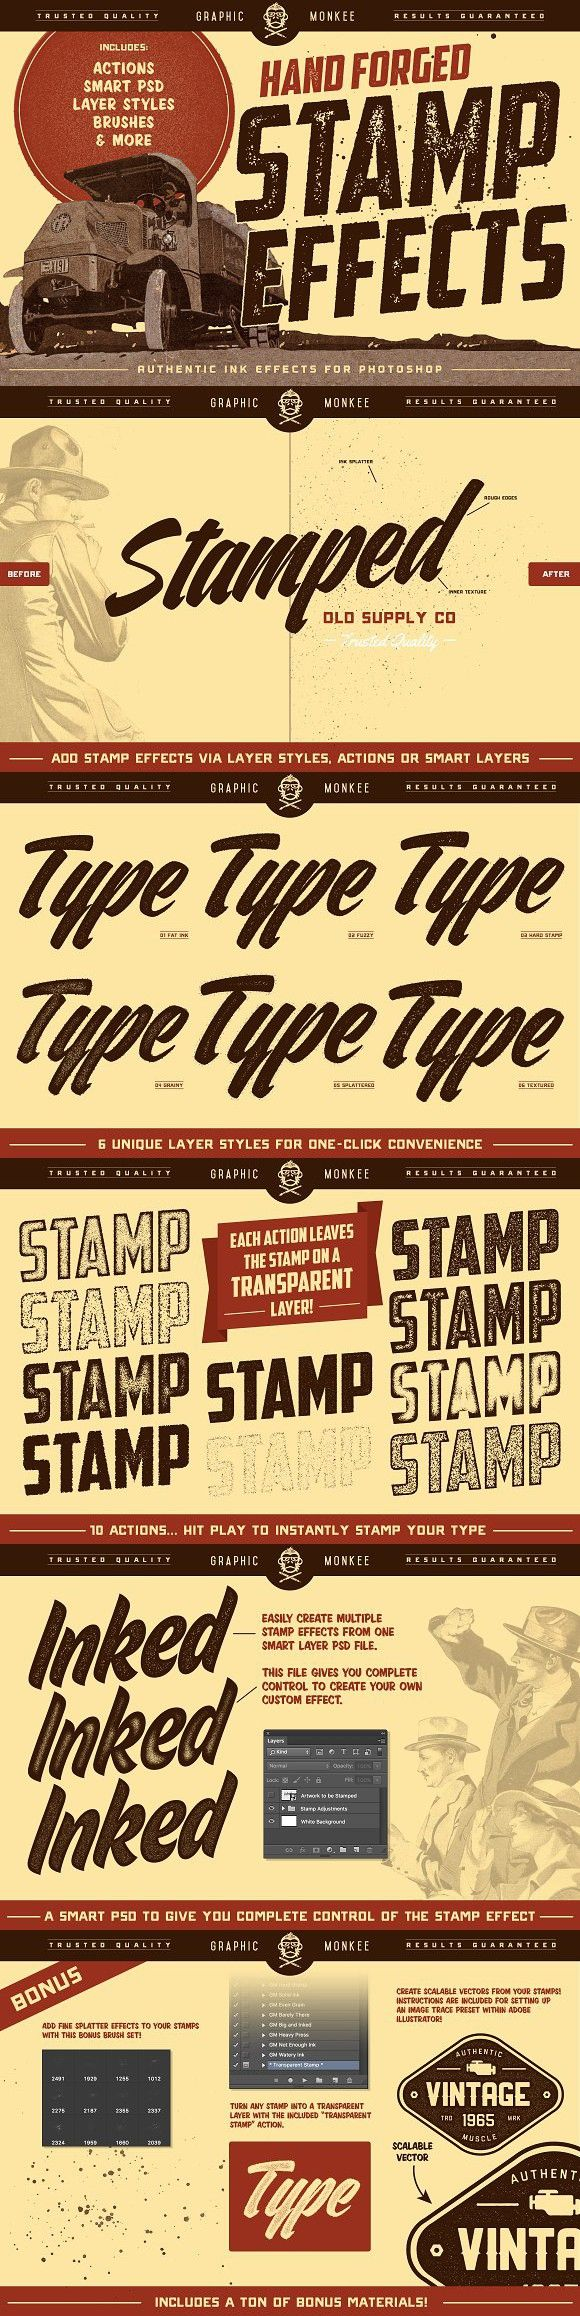 Hand Forged Stamp Effects. Photoshop Layer Styles. $14.00